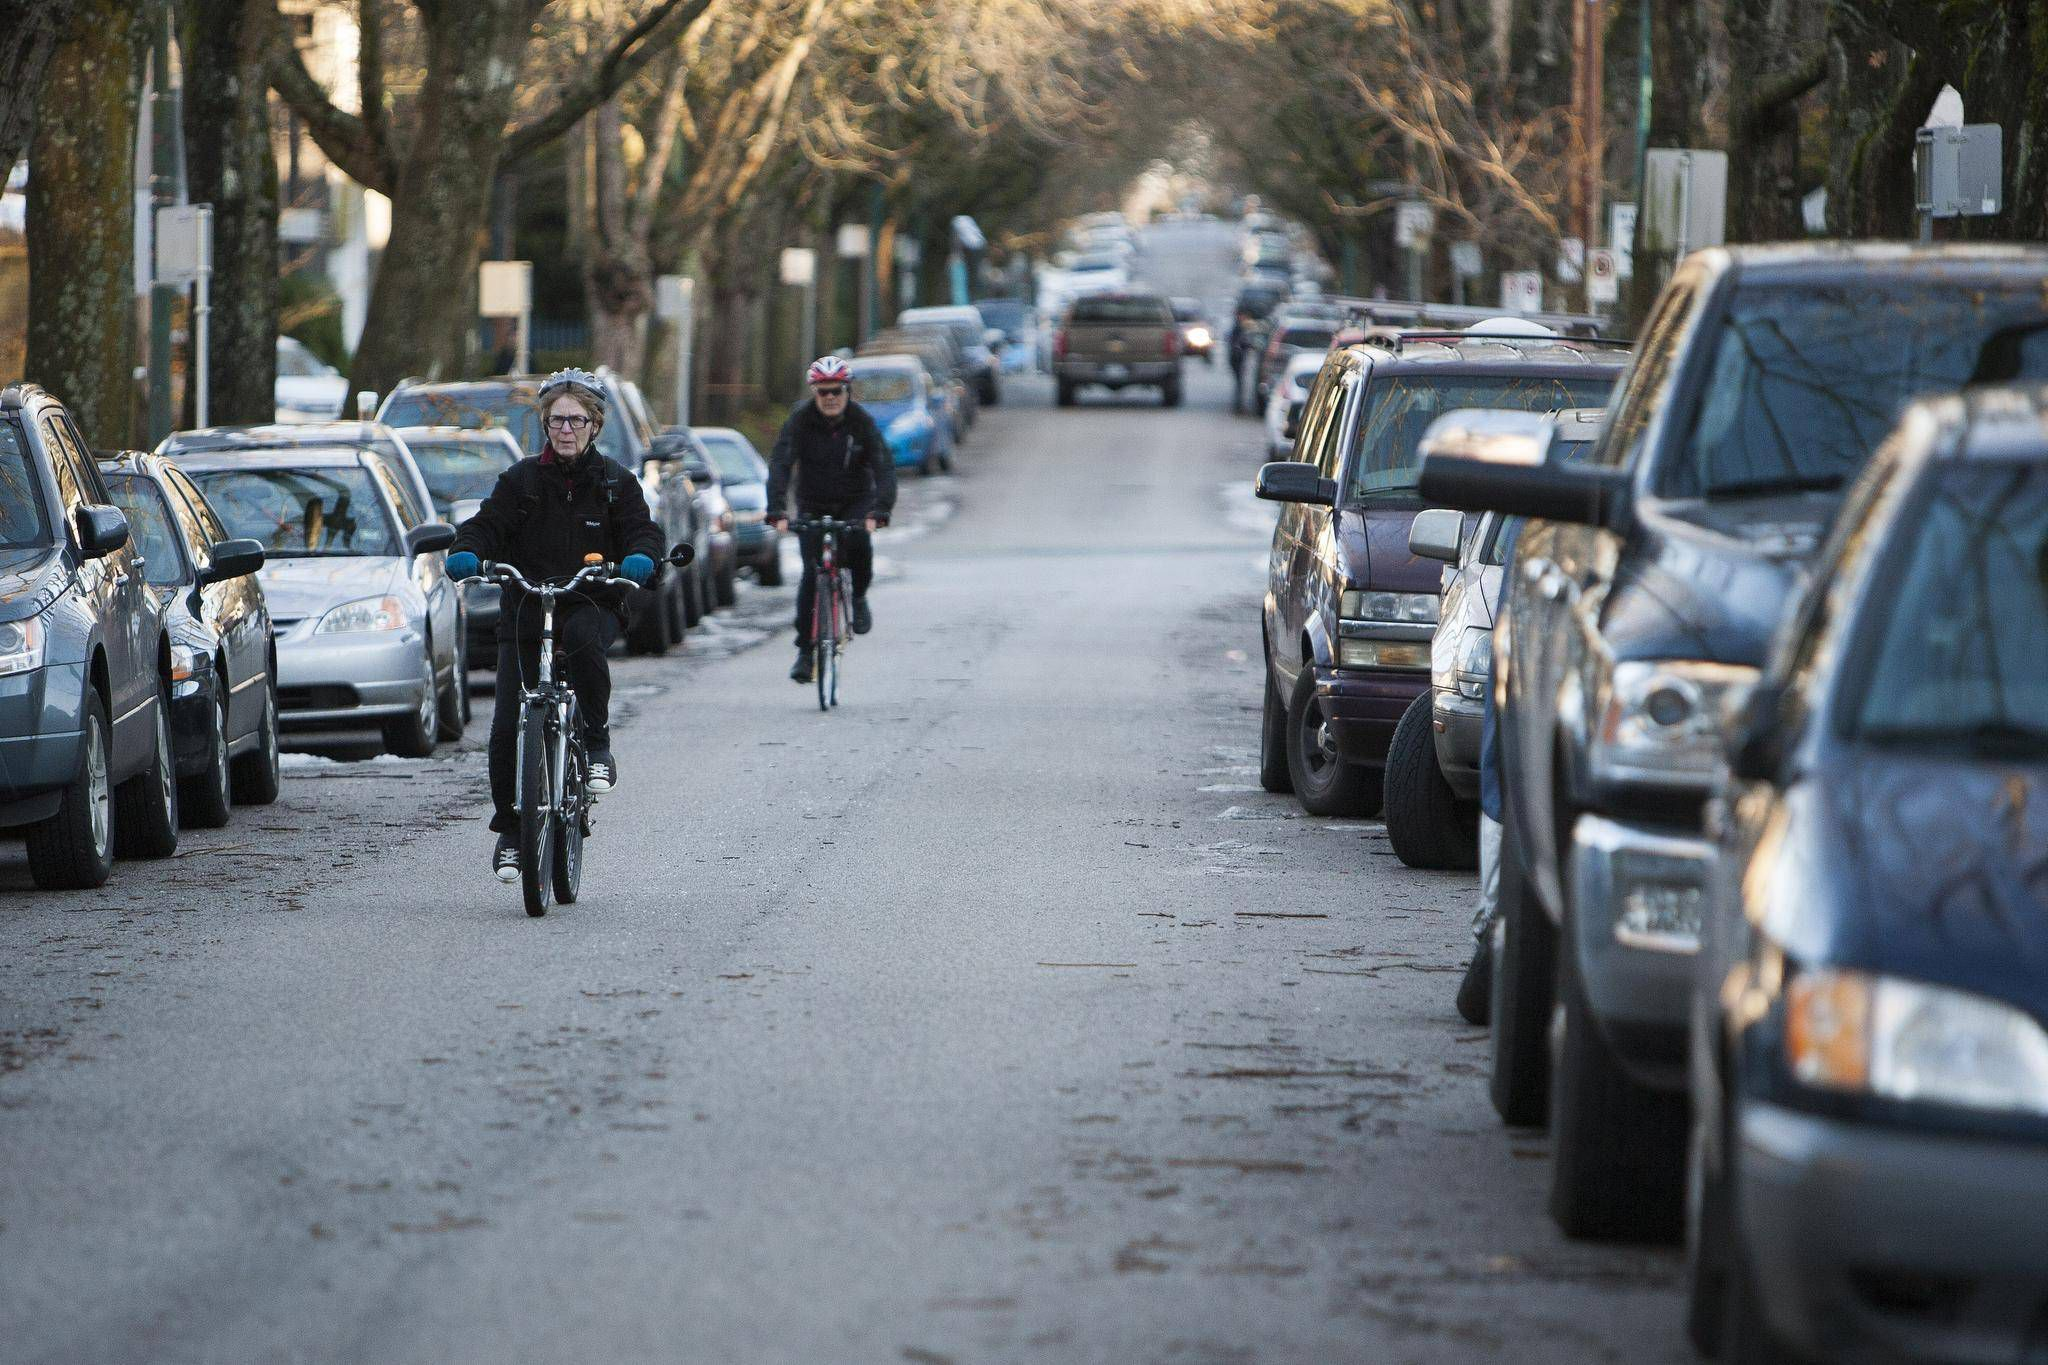 10th & Yukon - a popular 'shared bike street' in Vancouver. A full 60% of Vancouver's 280km of bike routes are actually on side-streets like this.  Photo / Globe & Mail